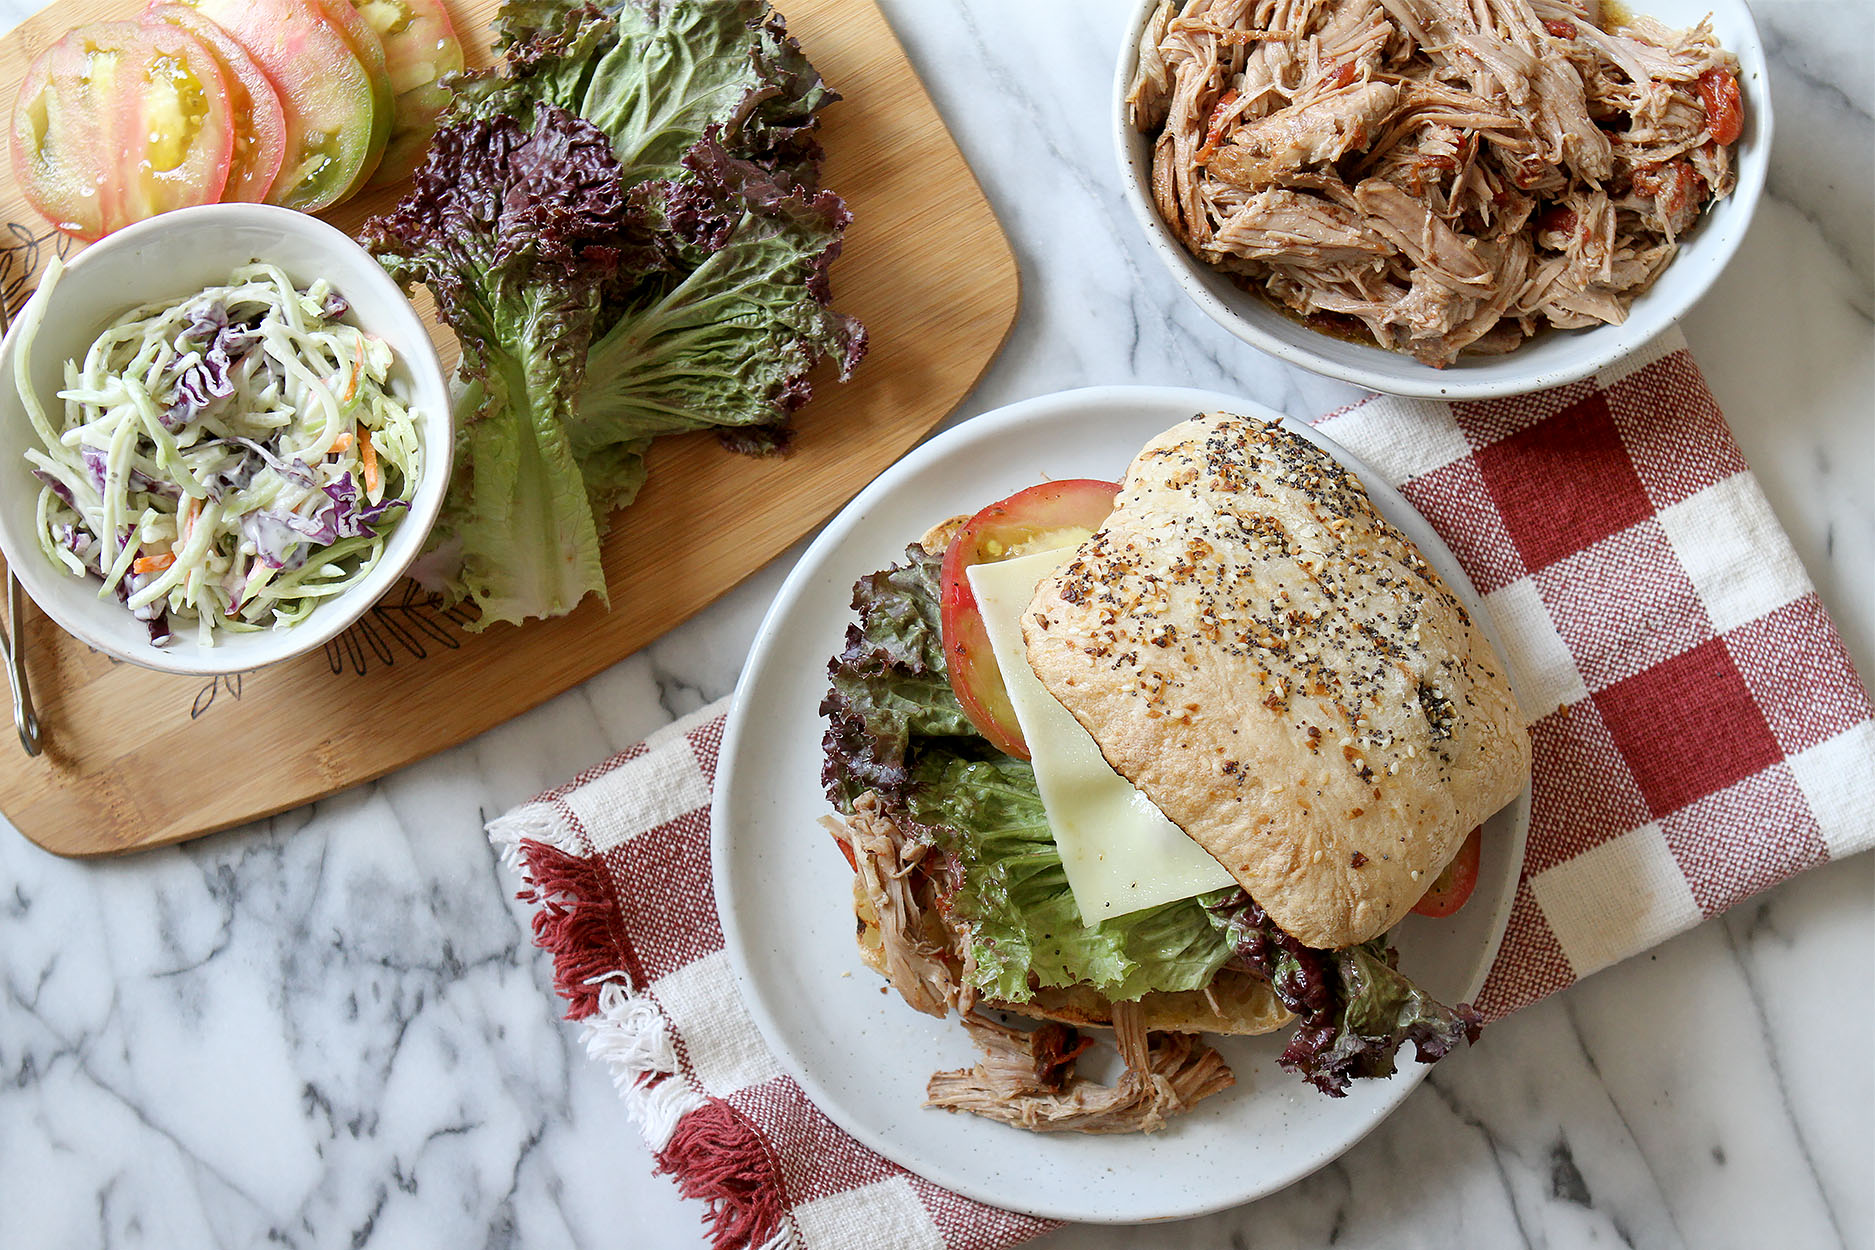 pulled pork sandwich on a white plate sitting on a red and white gingham napkin, a bowl of pulled pork to the side and a cutting board full of lettuce tomatoes and slaw.